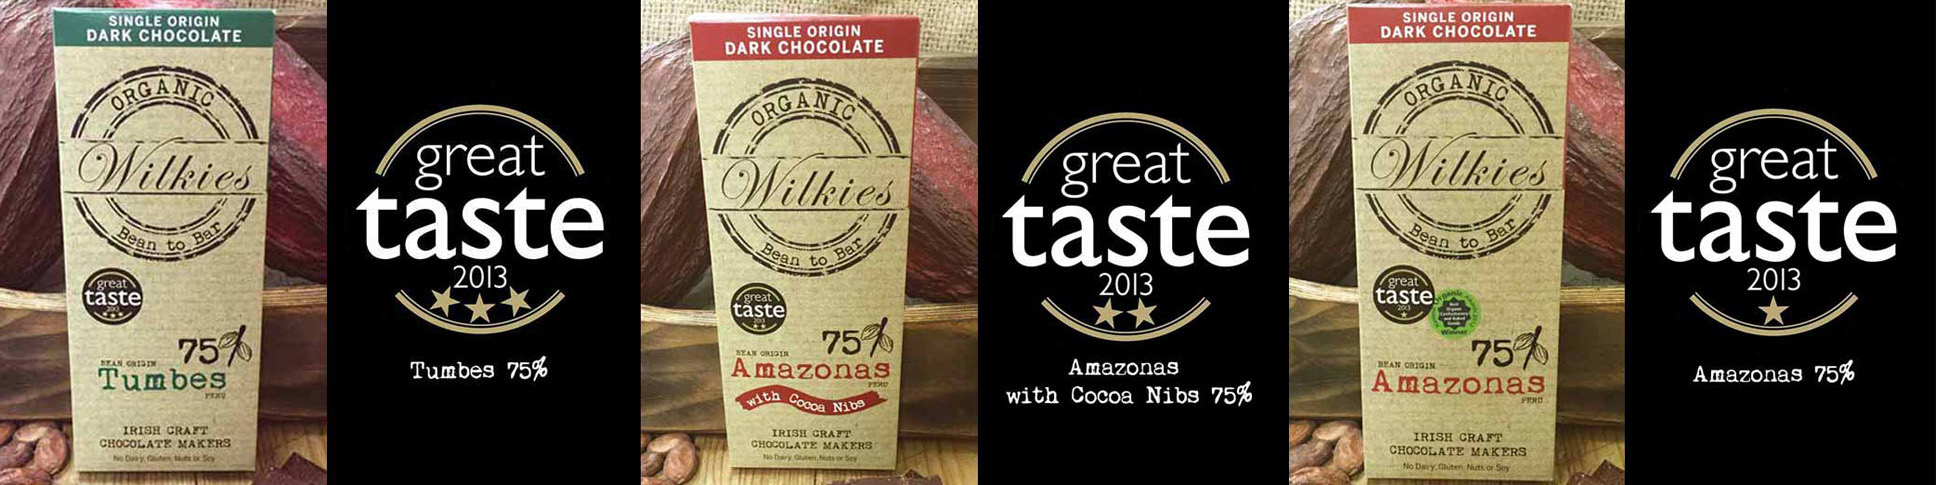 wilkies great taste